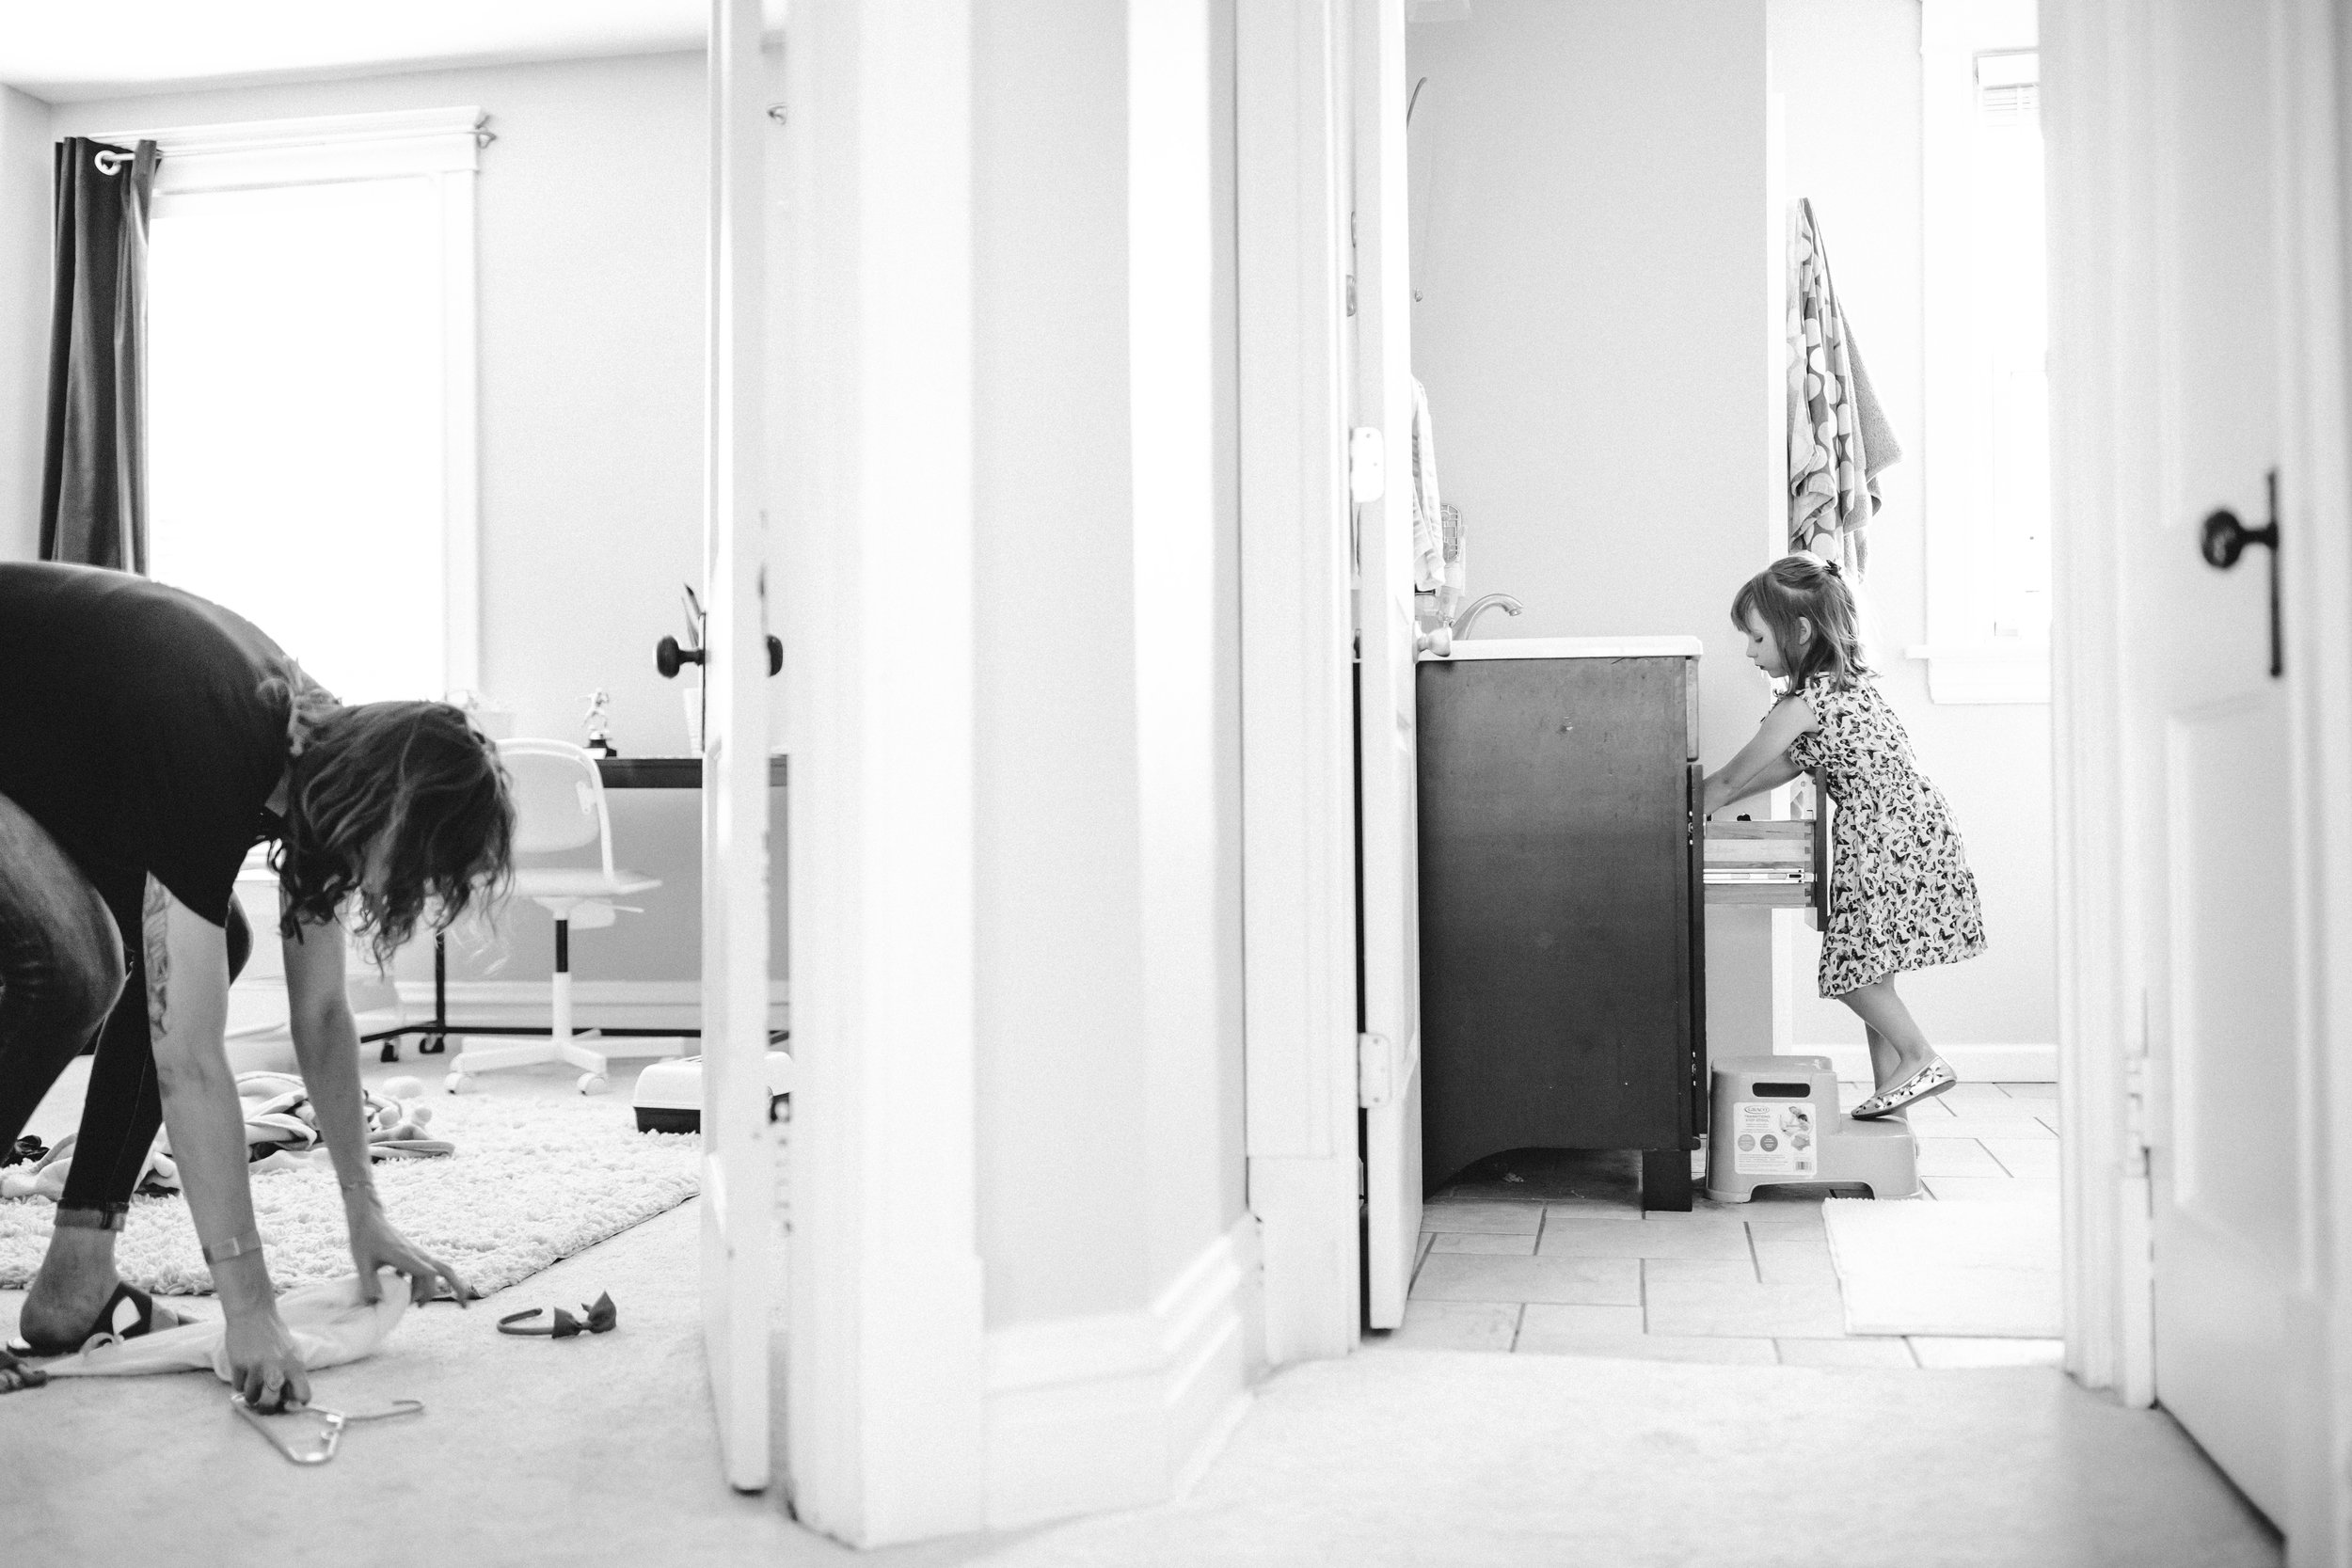 black and white photo of mother and daughter in a house, mother is on the left in the bedroom picking up toys and clothes from the ground, while across the hall young daughter, 7 years old, is stepping up on a step ladder and has her hands in the bathroom sink